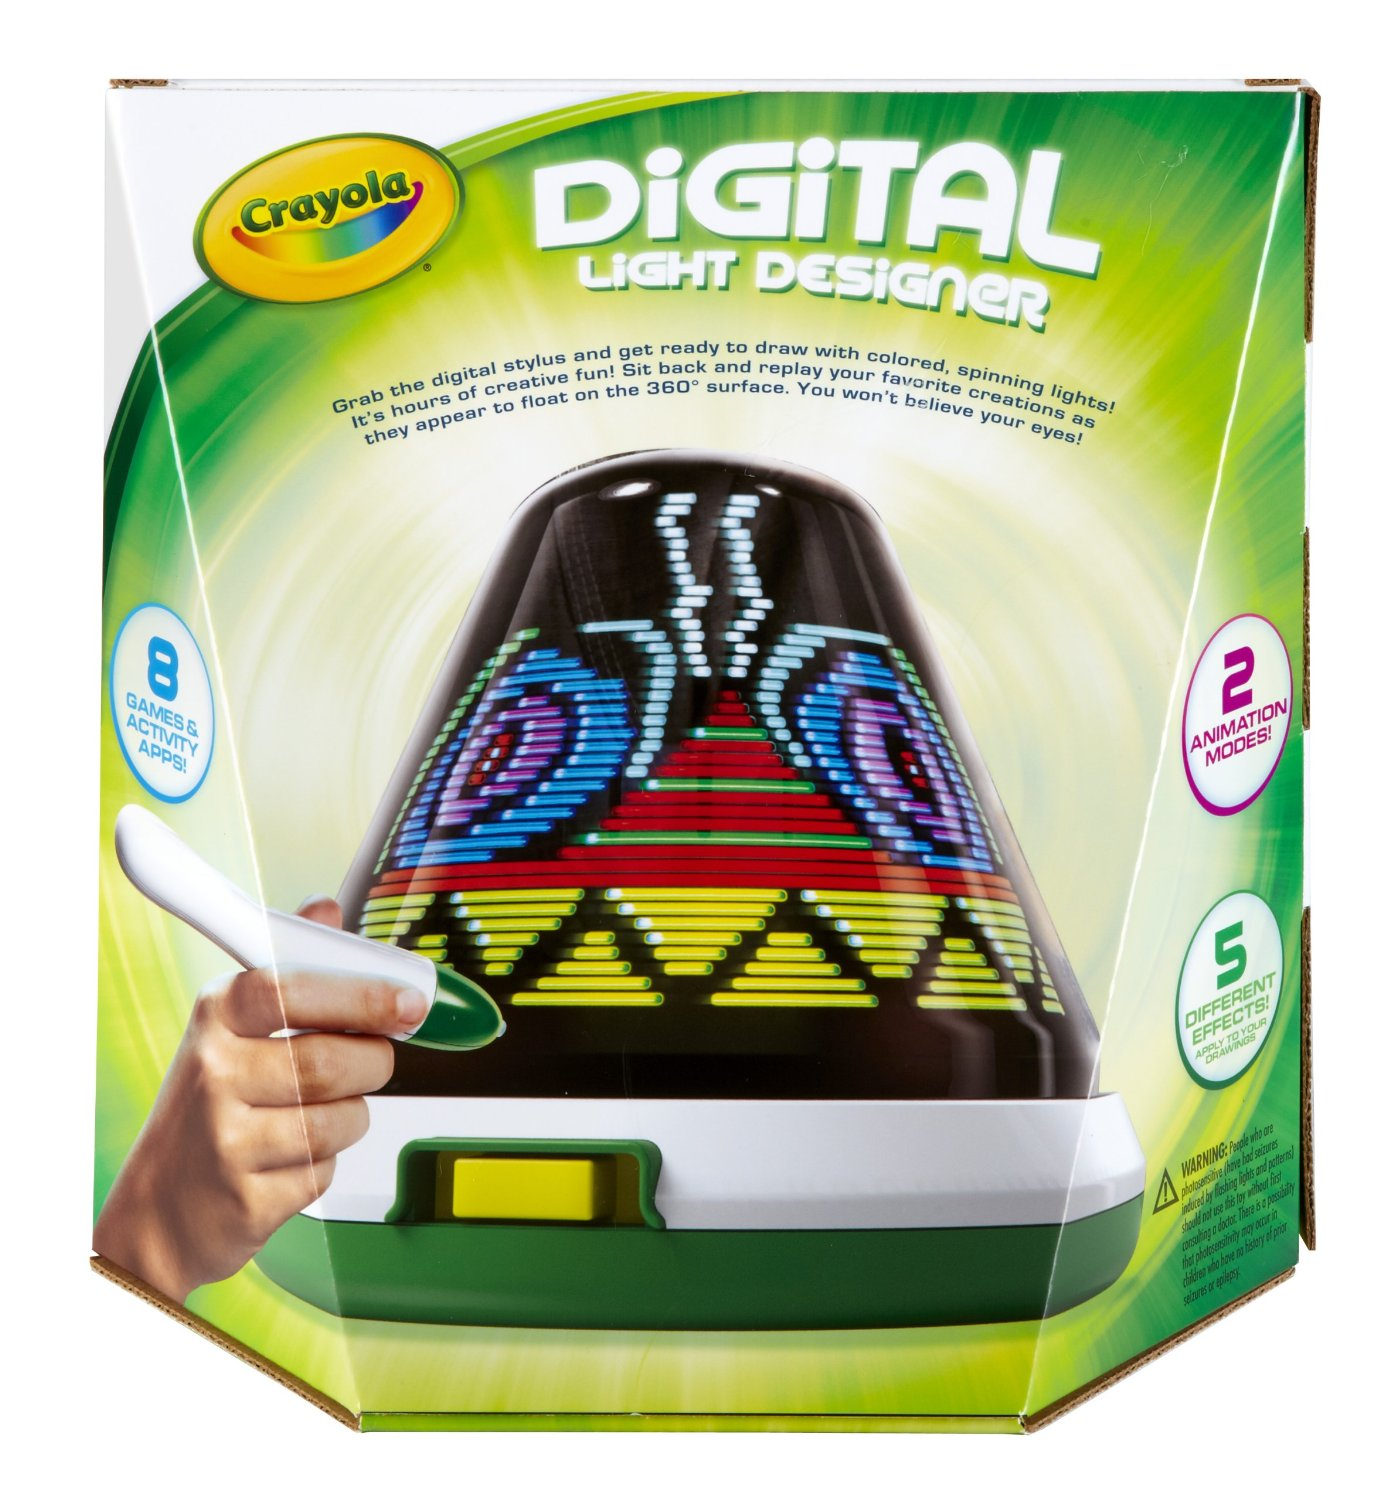 Save 20% on Crayola Digital Light Designer